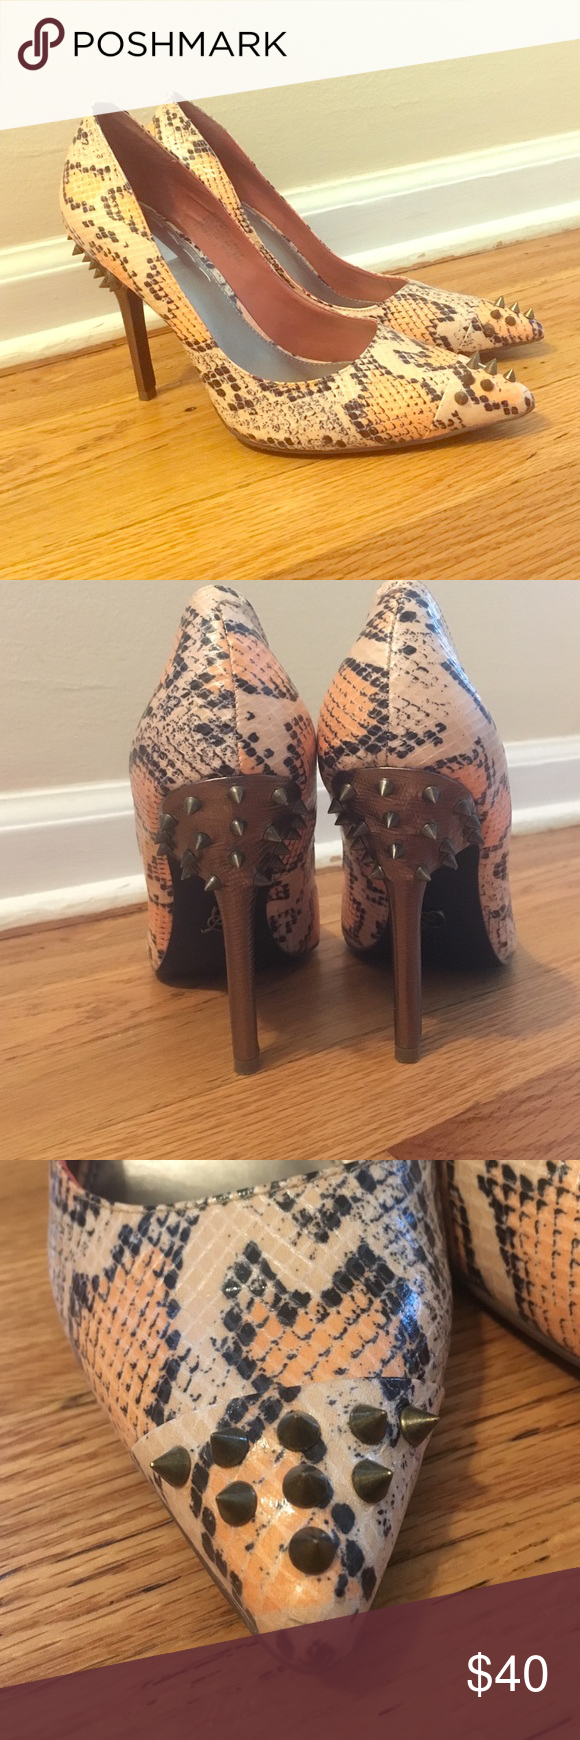 New faux snake skin heels Super sexy heels! The faux snake skin as well as spiked detail are perfect for adding edge to any outfit. These are multi colored orange, tan, and a black/grey combo (see pics because it's hard to describe). These have been worn once. I love these shoes and want them to be put to use. I just don't get out much anymore! Rachel Roy Shoes Heels